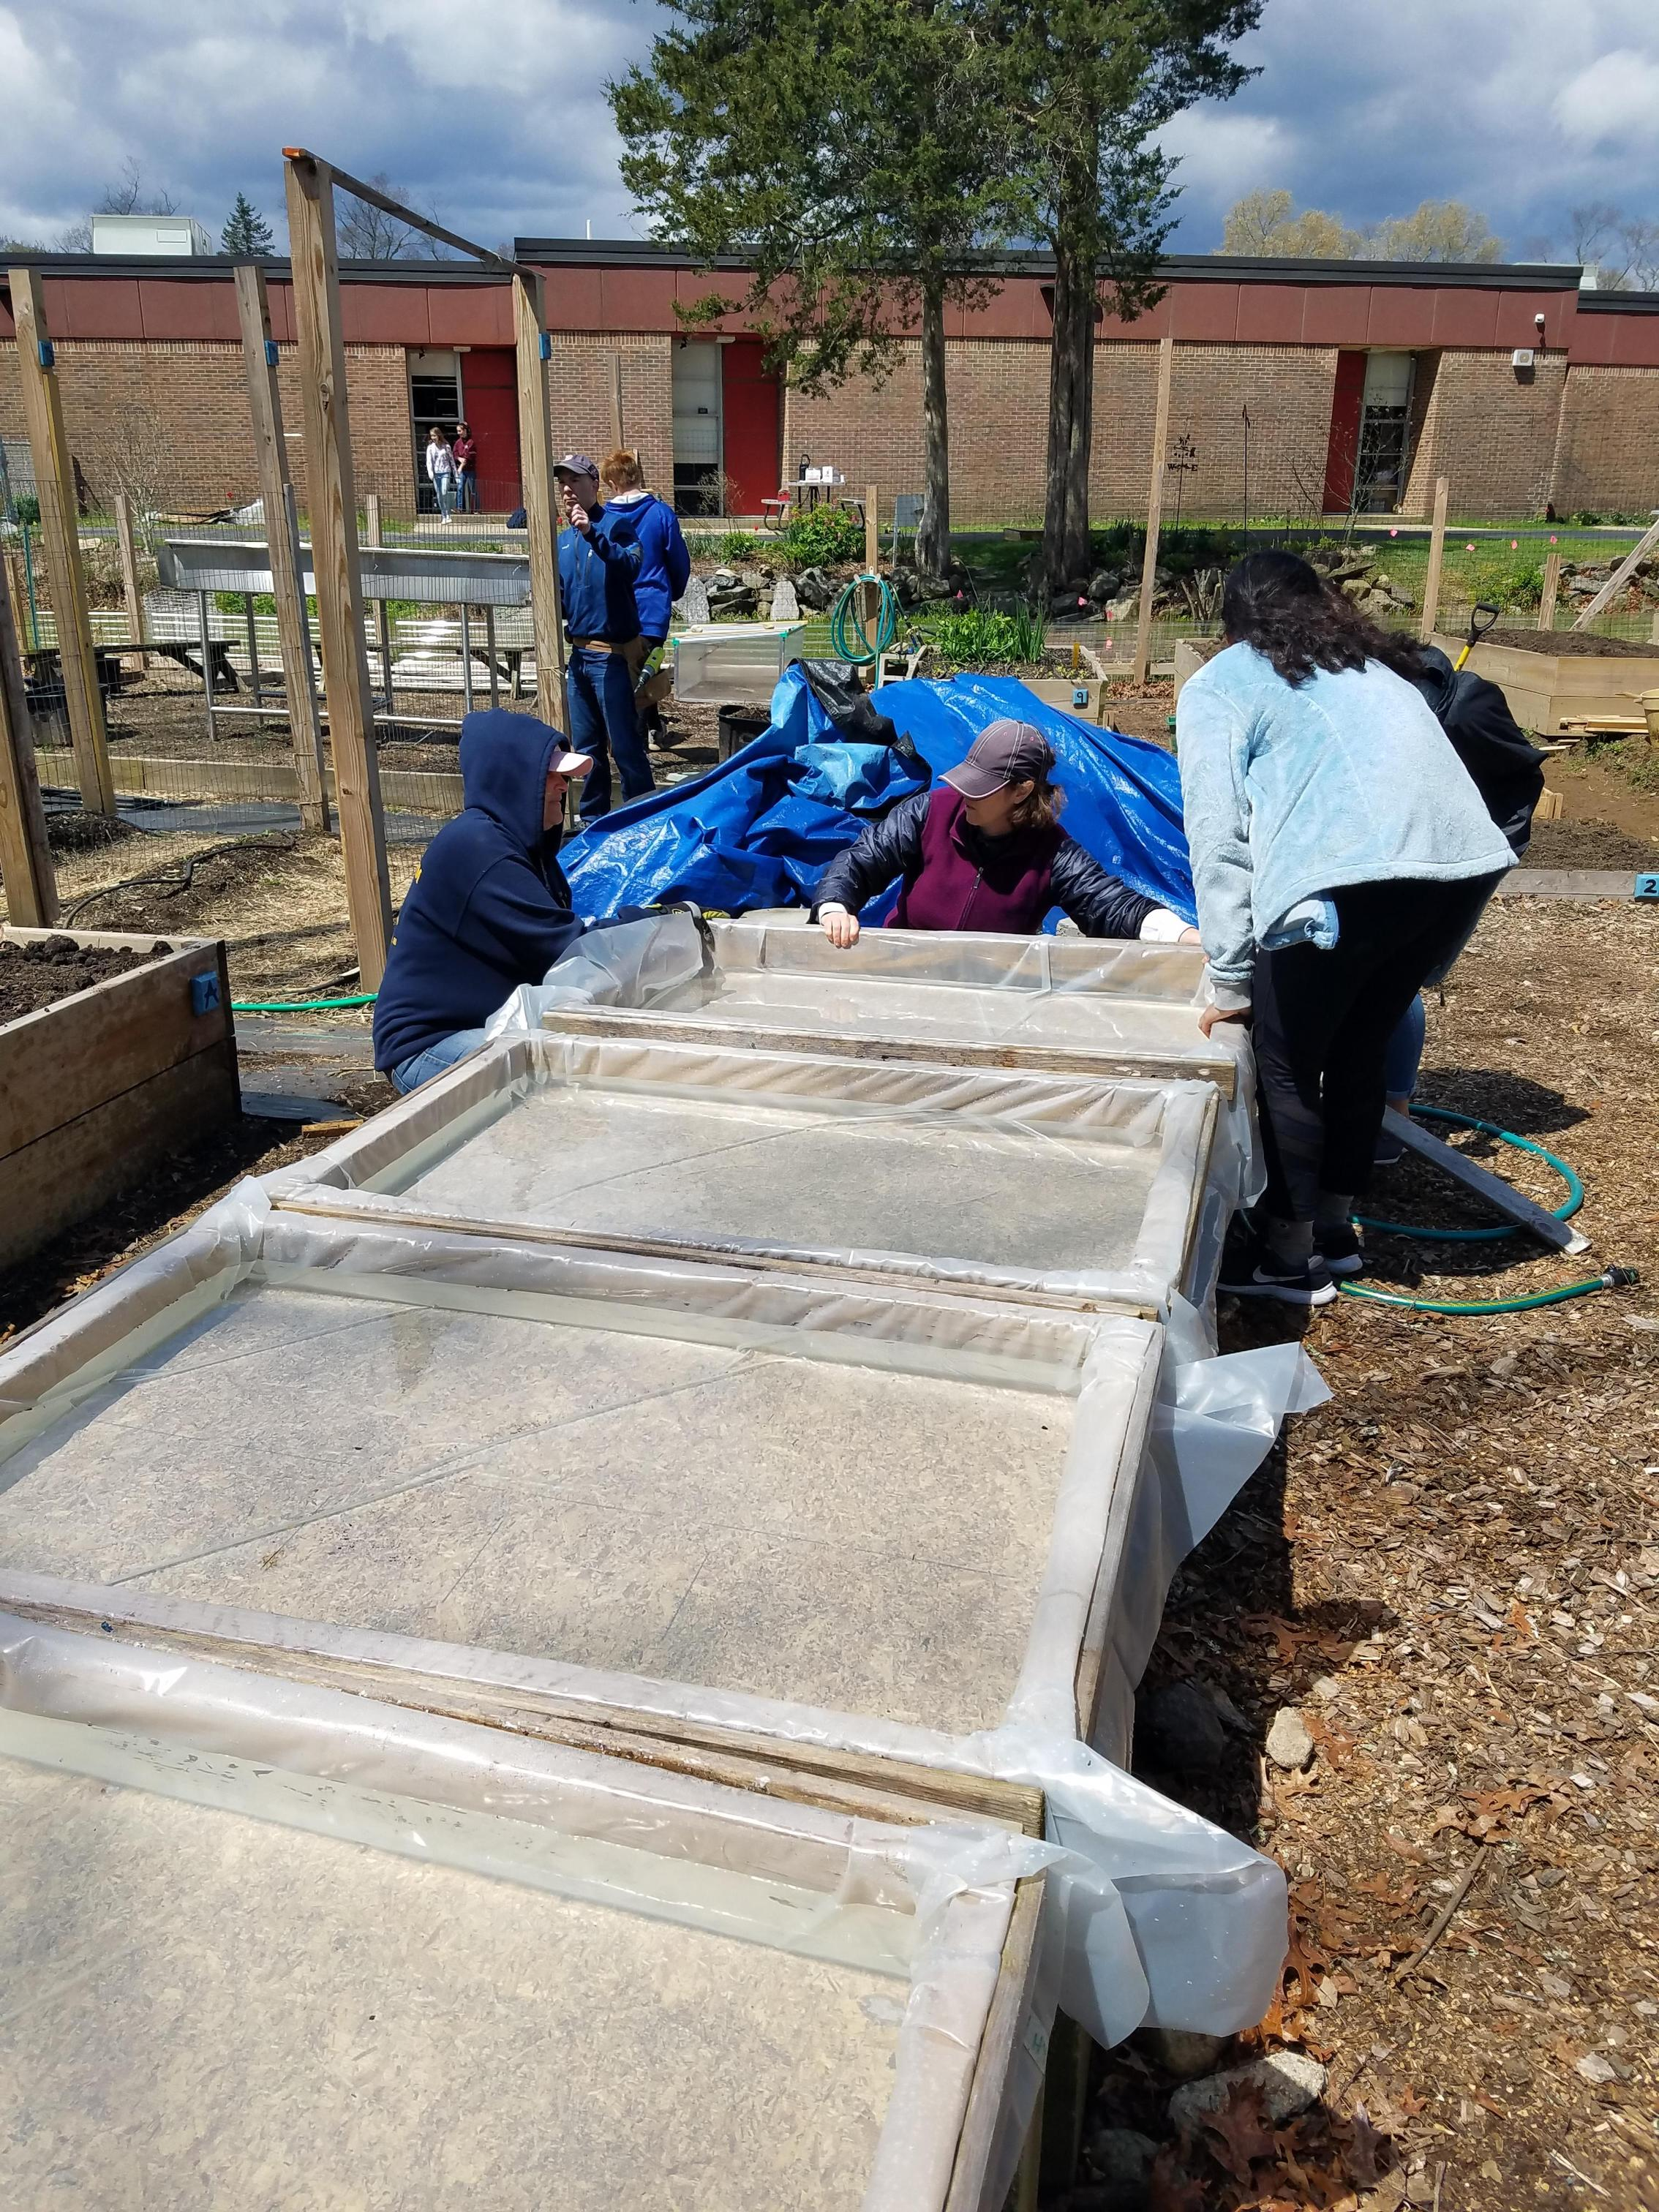 Updating the hydroponic beds